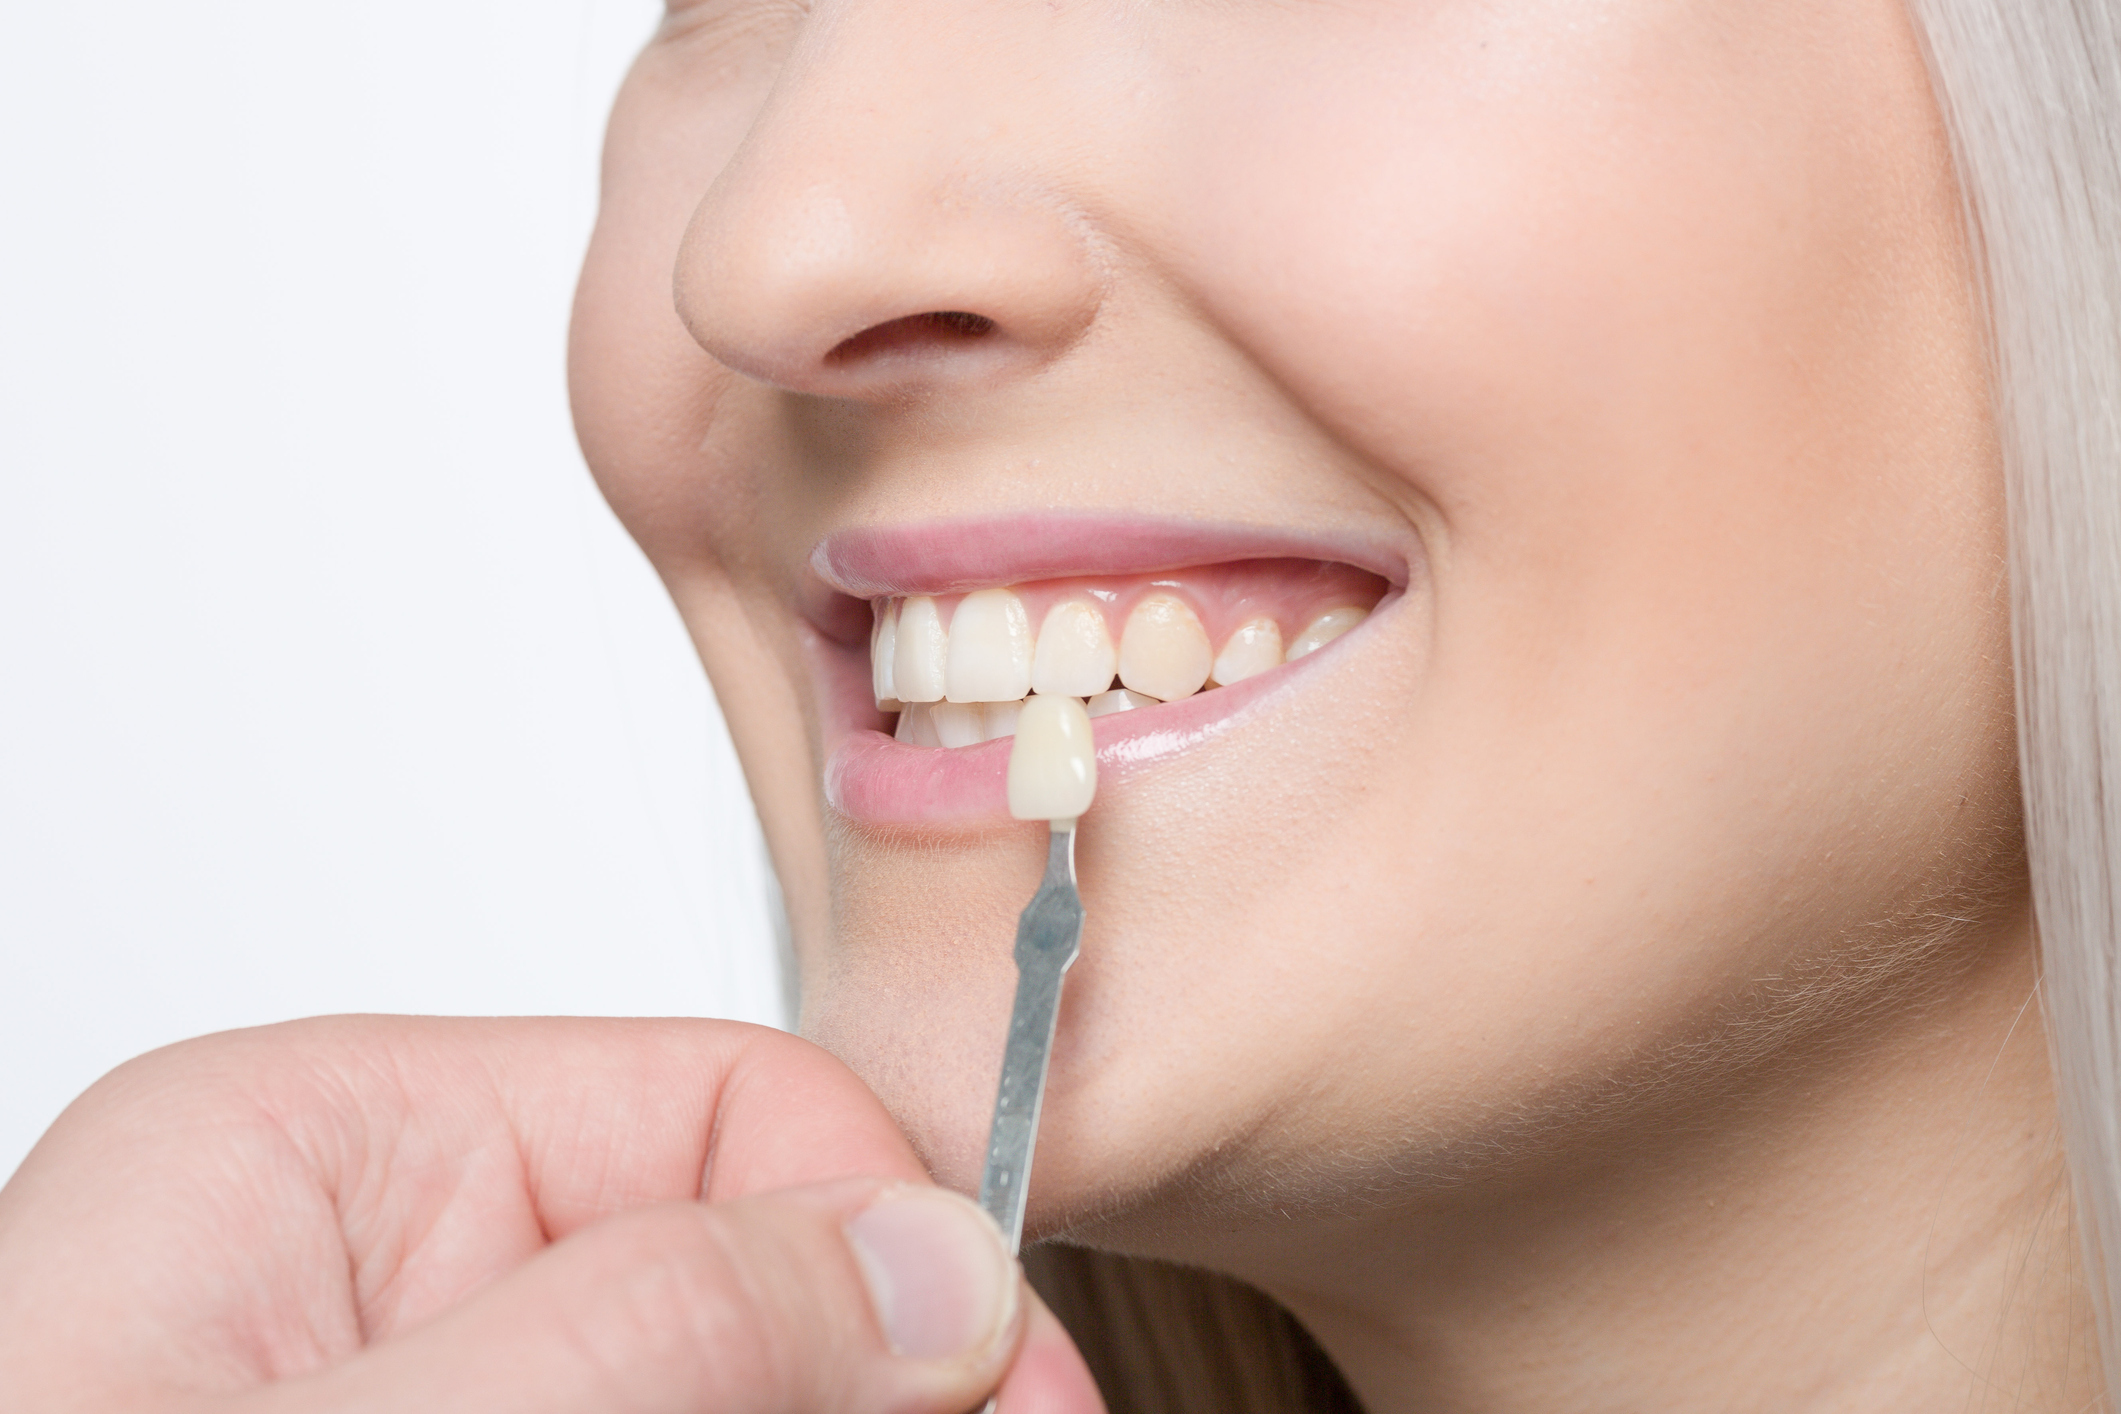 Using shade guide at woman's mouth to check veneer of tooth crown